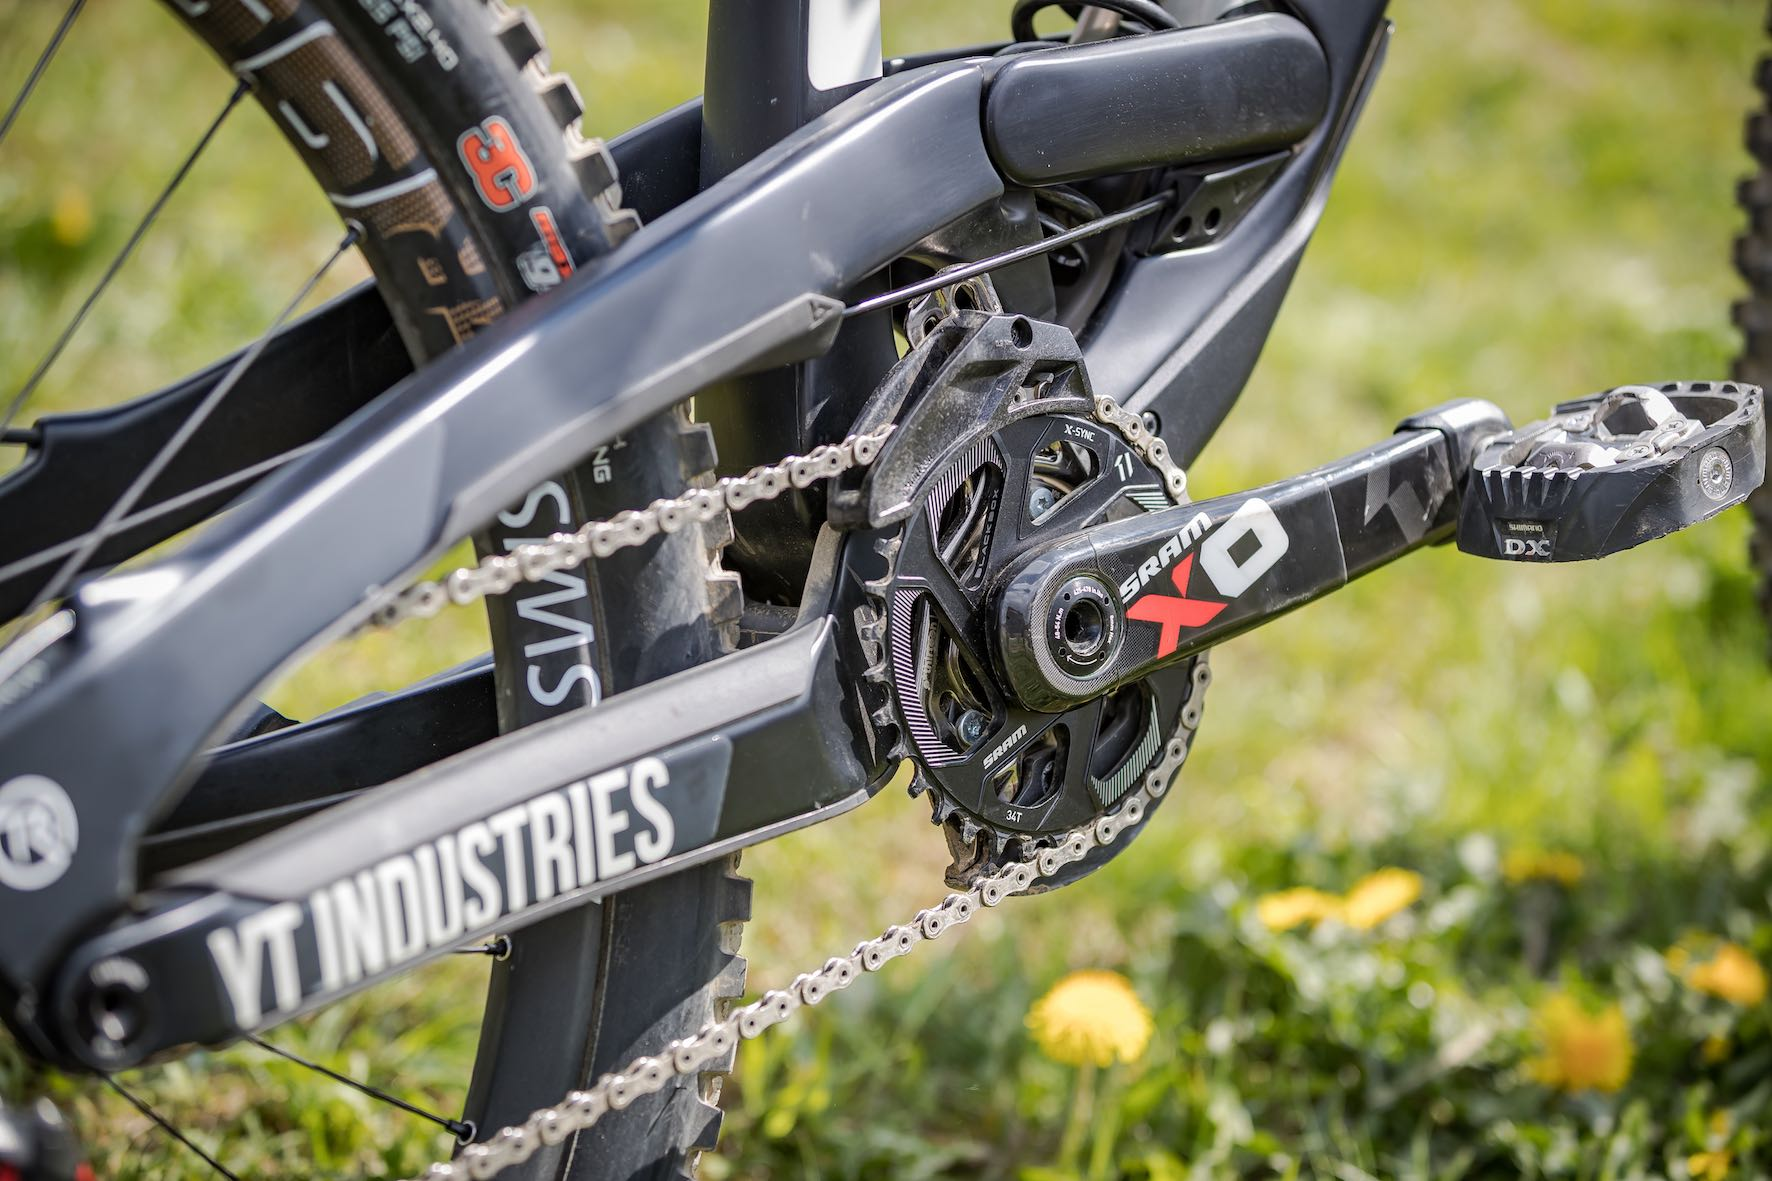 Meet the new 2018 YT Industries TUES Downhill Bike